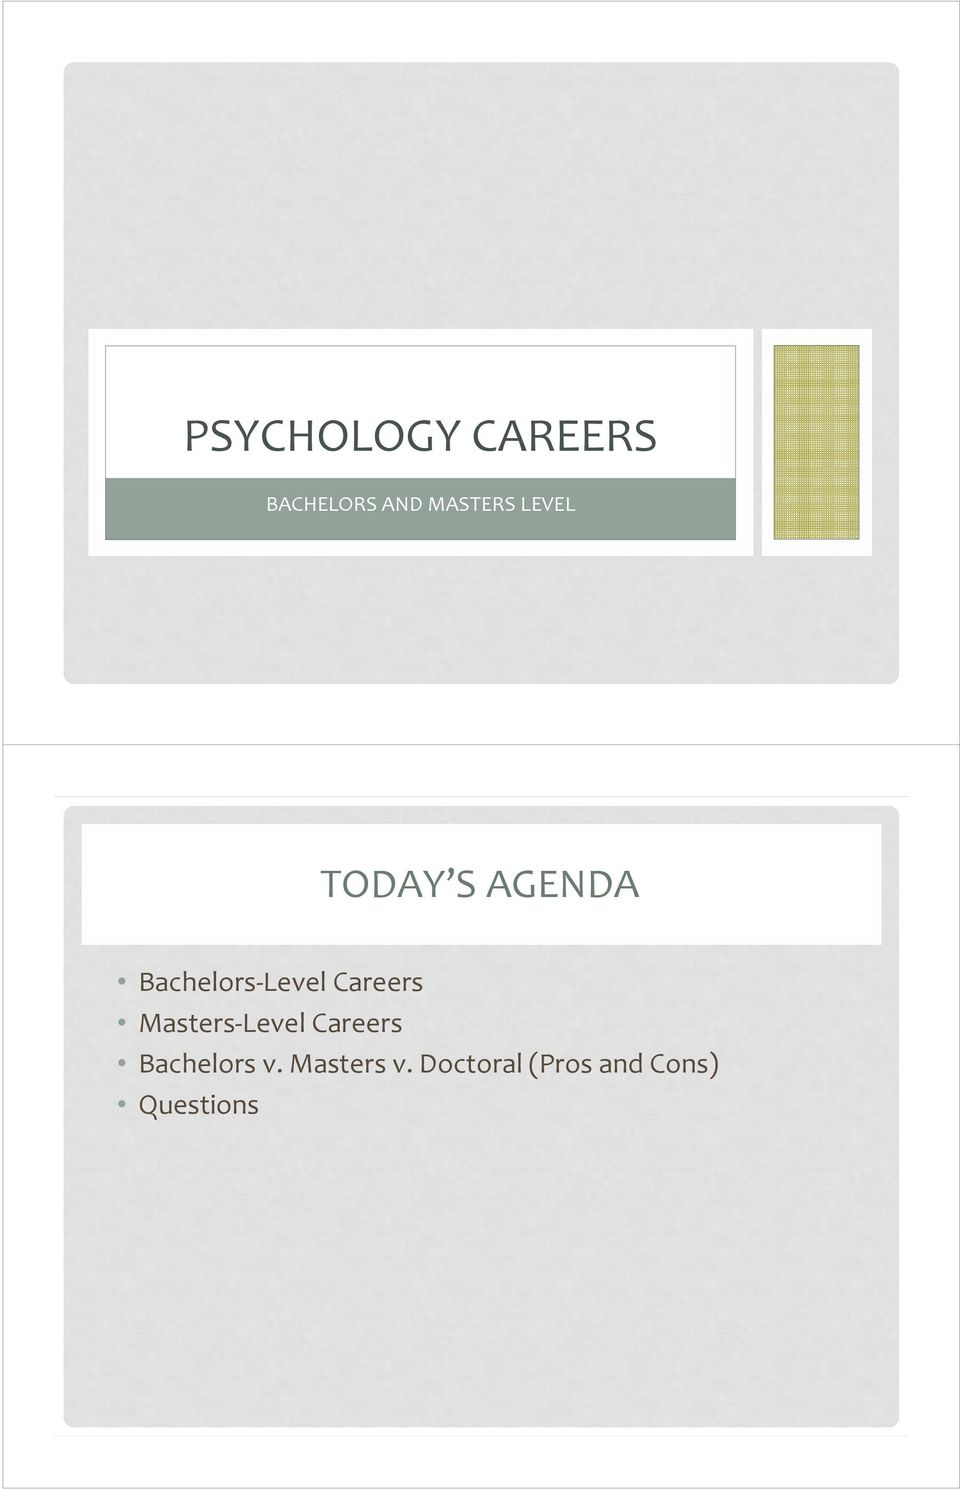 Careers Masters Level Careers Bachelors v.